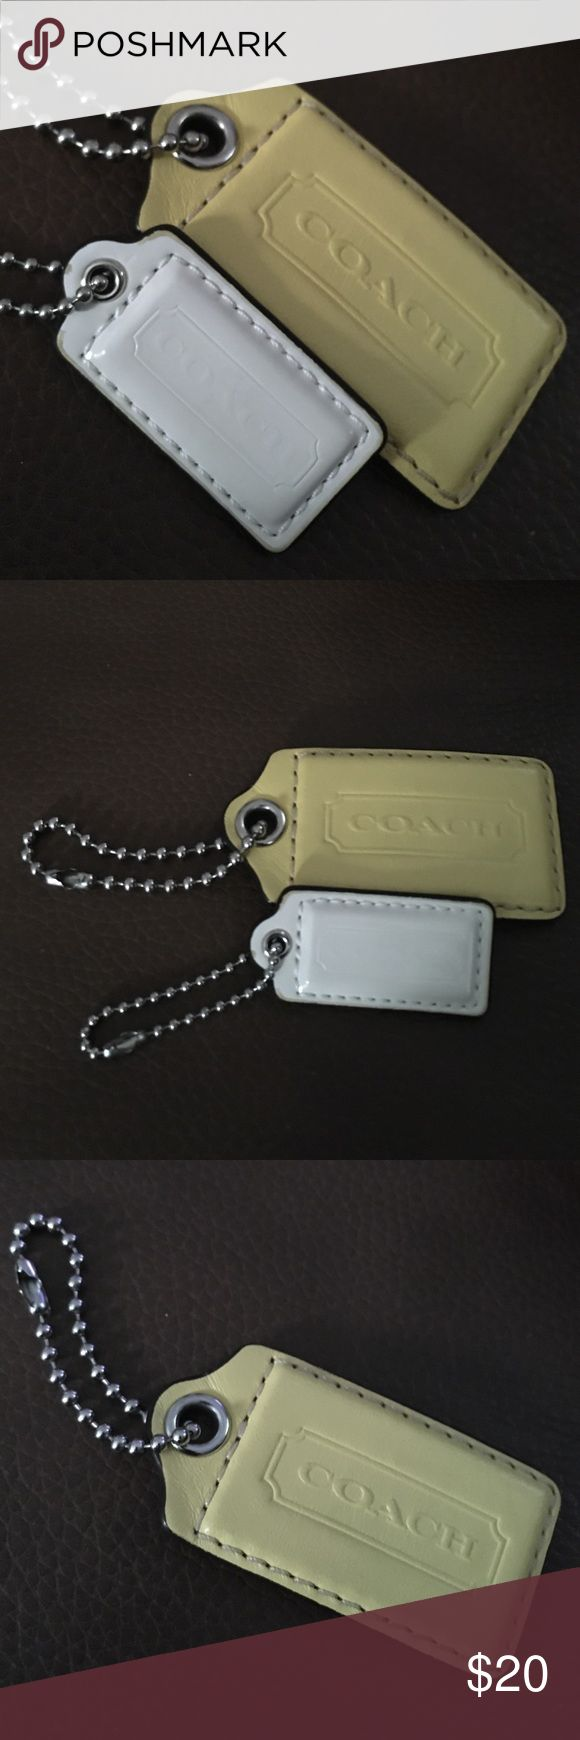 Coach two key change or card holder Very nice yellow is large and white is small Coach Accessories Key & Card Holders